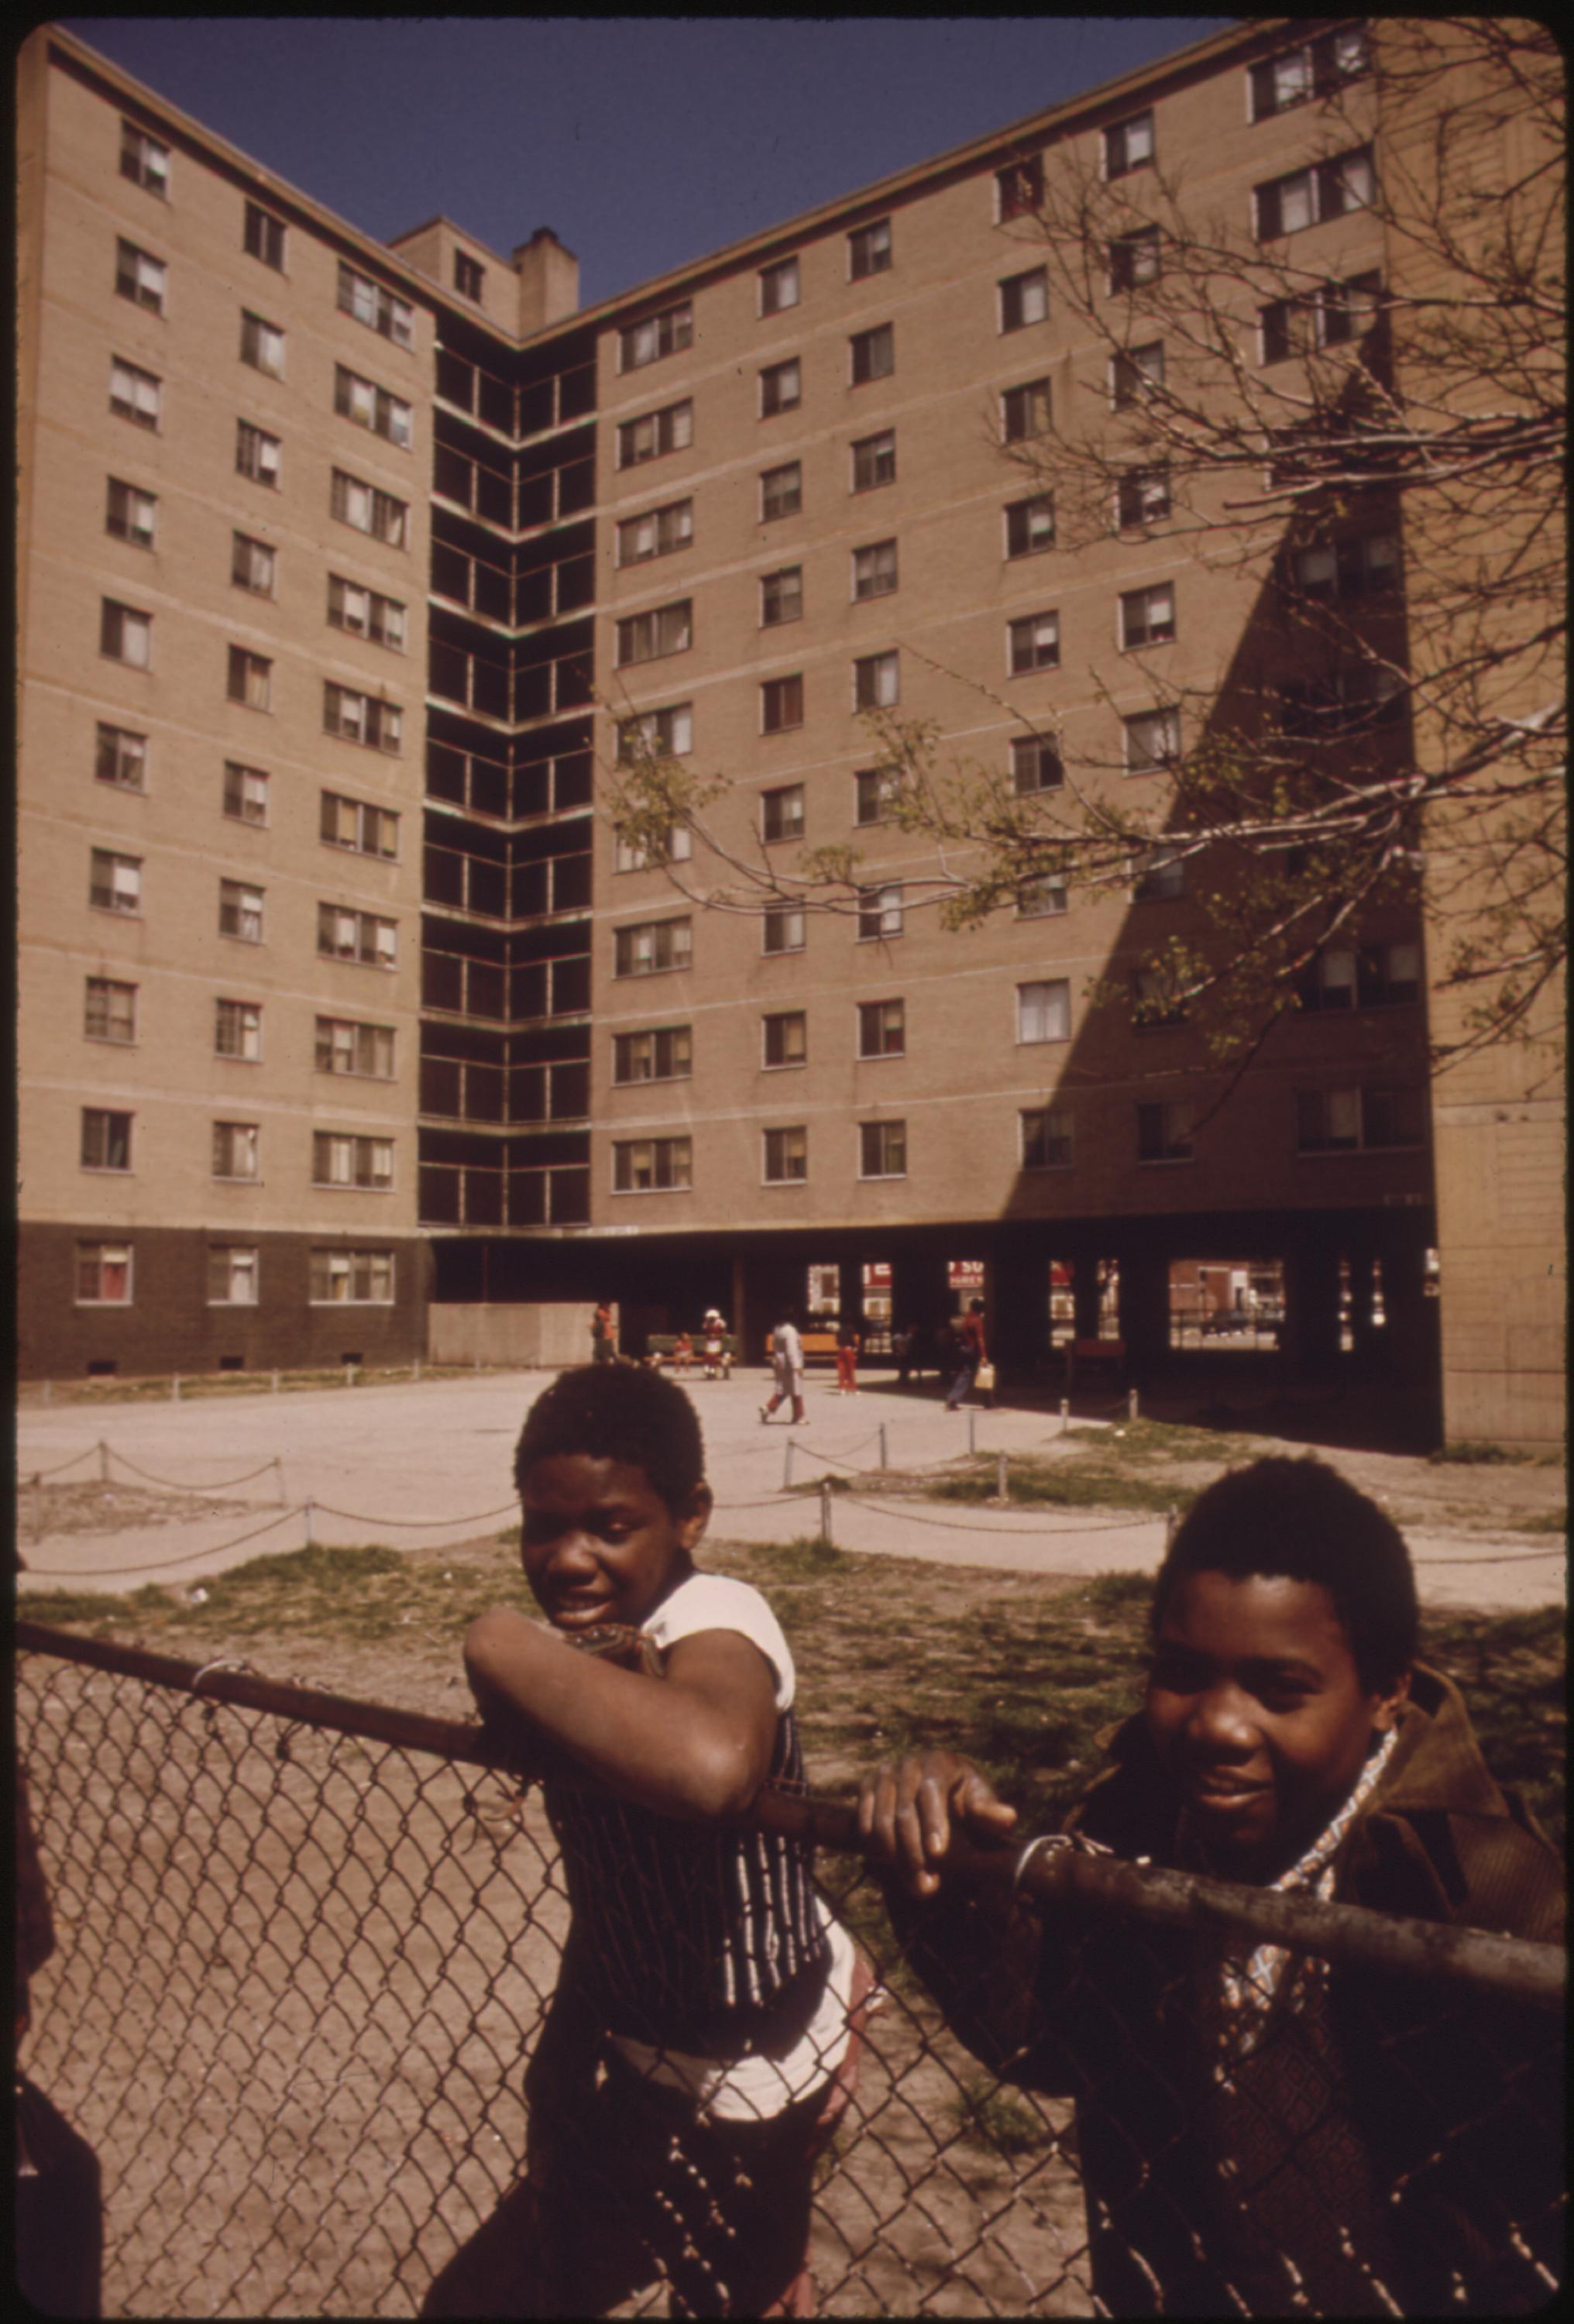 Black Youngsters Outside The Stateway Gardens Highrise Housing Project On Chicago's South Side, 05:1973